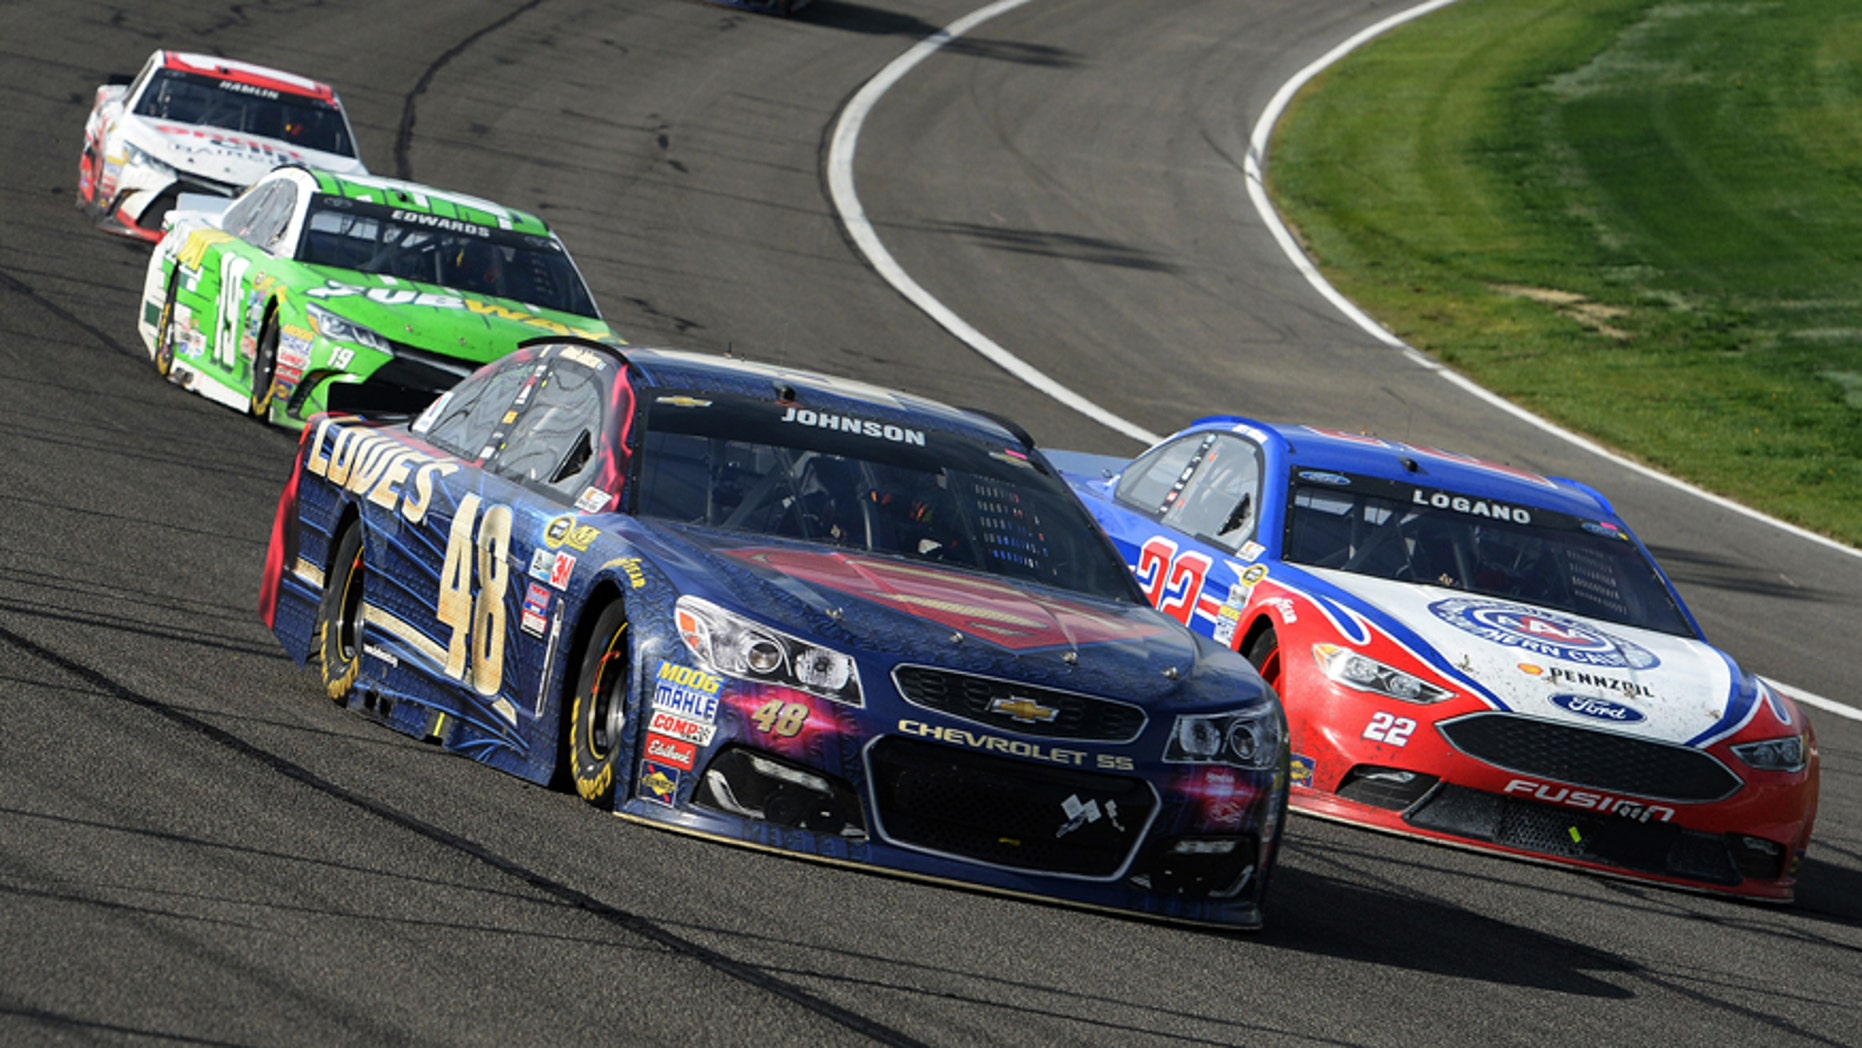 Jimmie Johnson (48) and Joey Logano (22) race for the lead during the late laps of the NASCAR 400 mile auto race Sunday, March 20, 2016, at Auto Club Speedway in Fontana, Calif. (AP Photo/Will Lester)